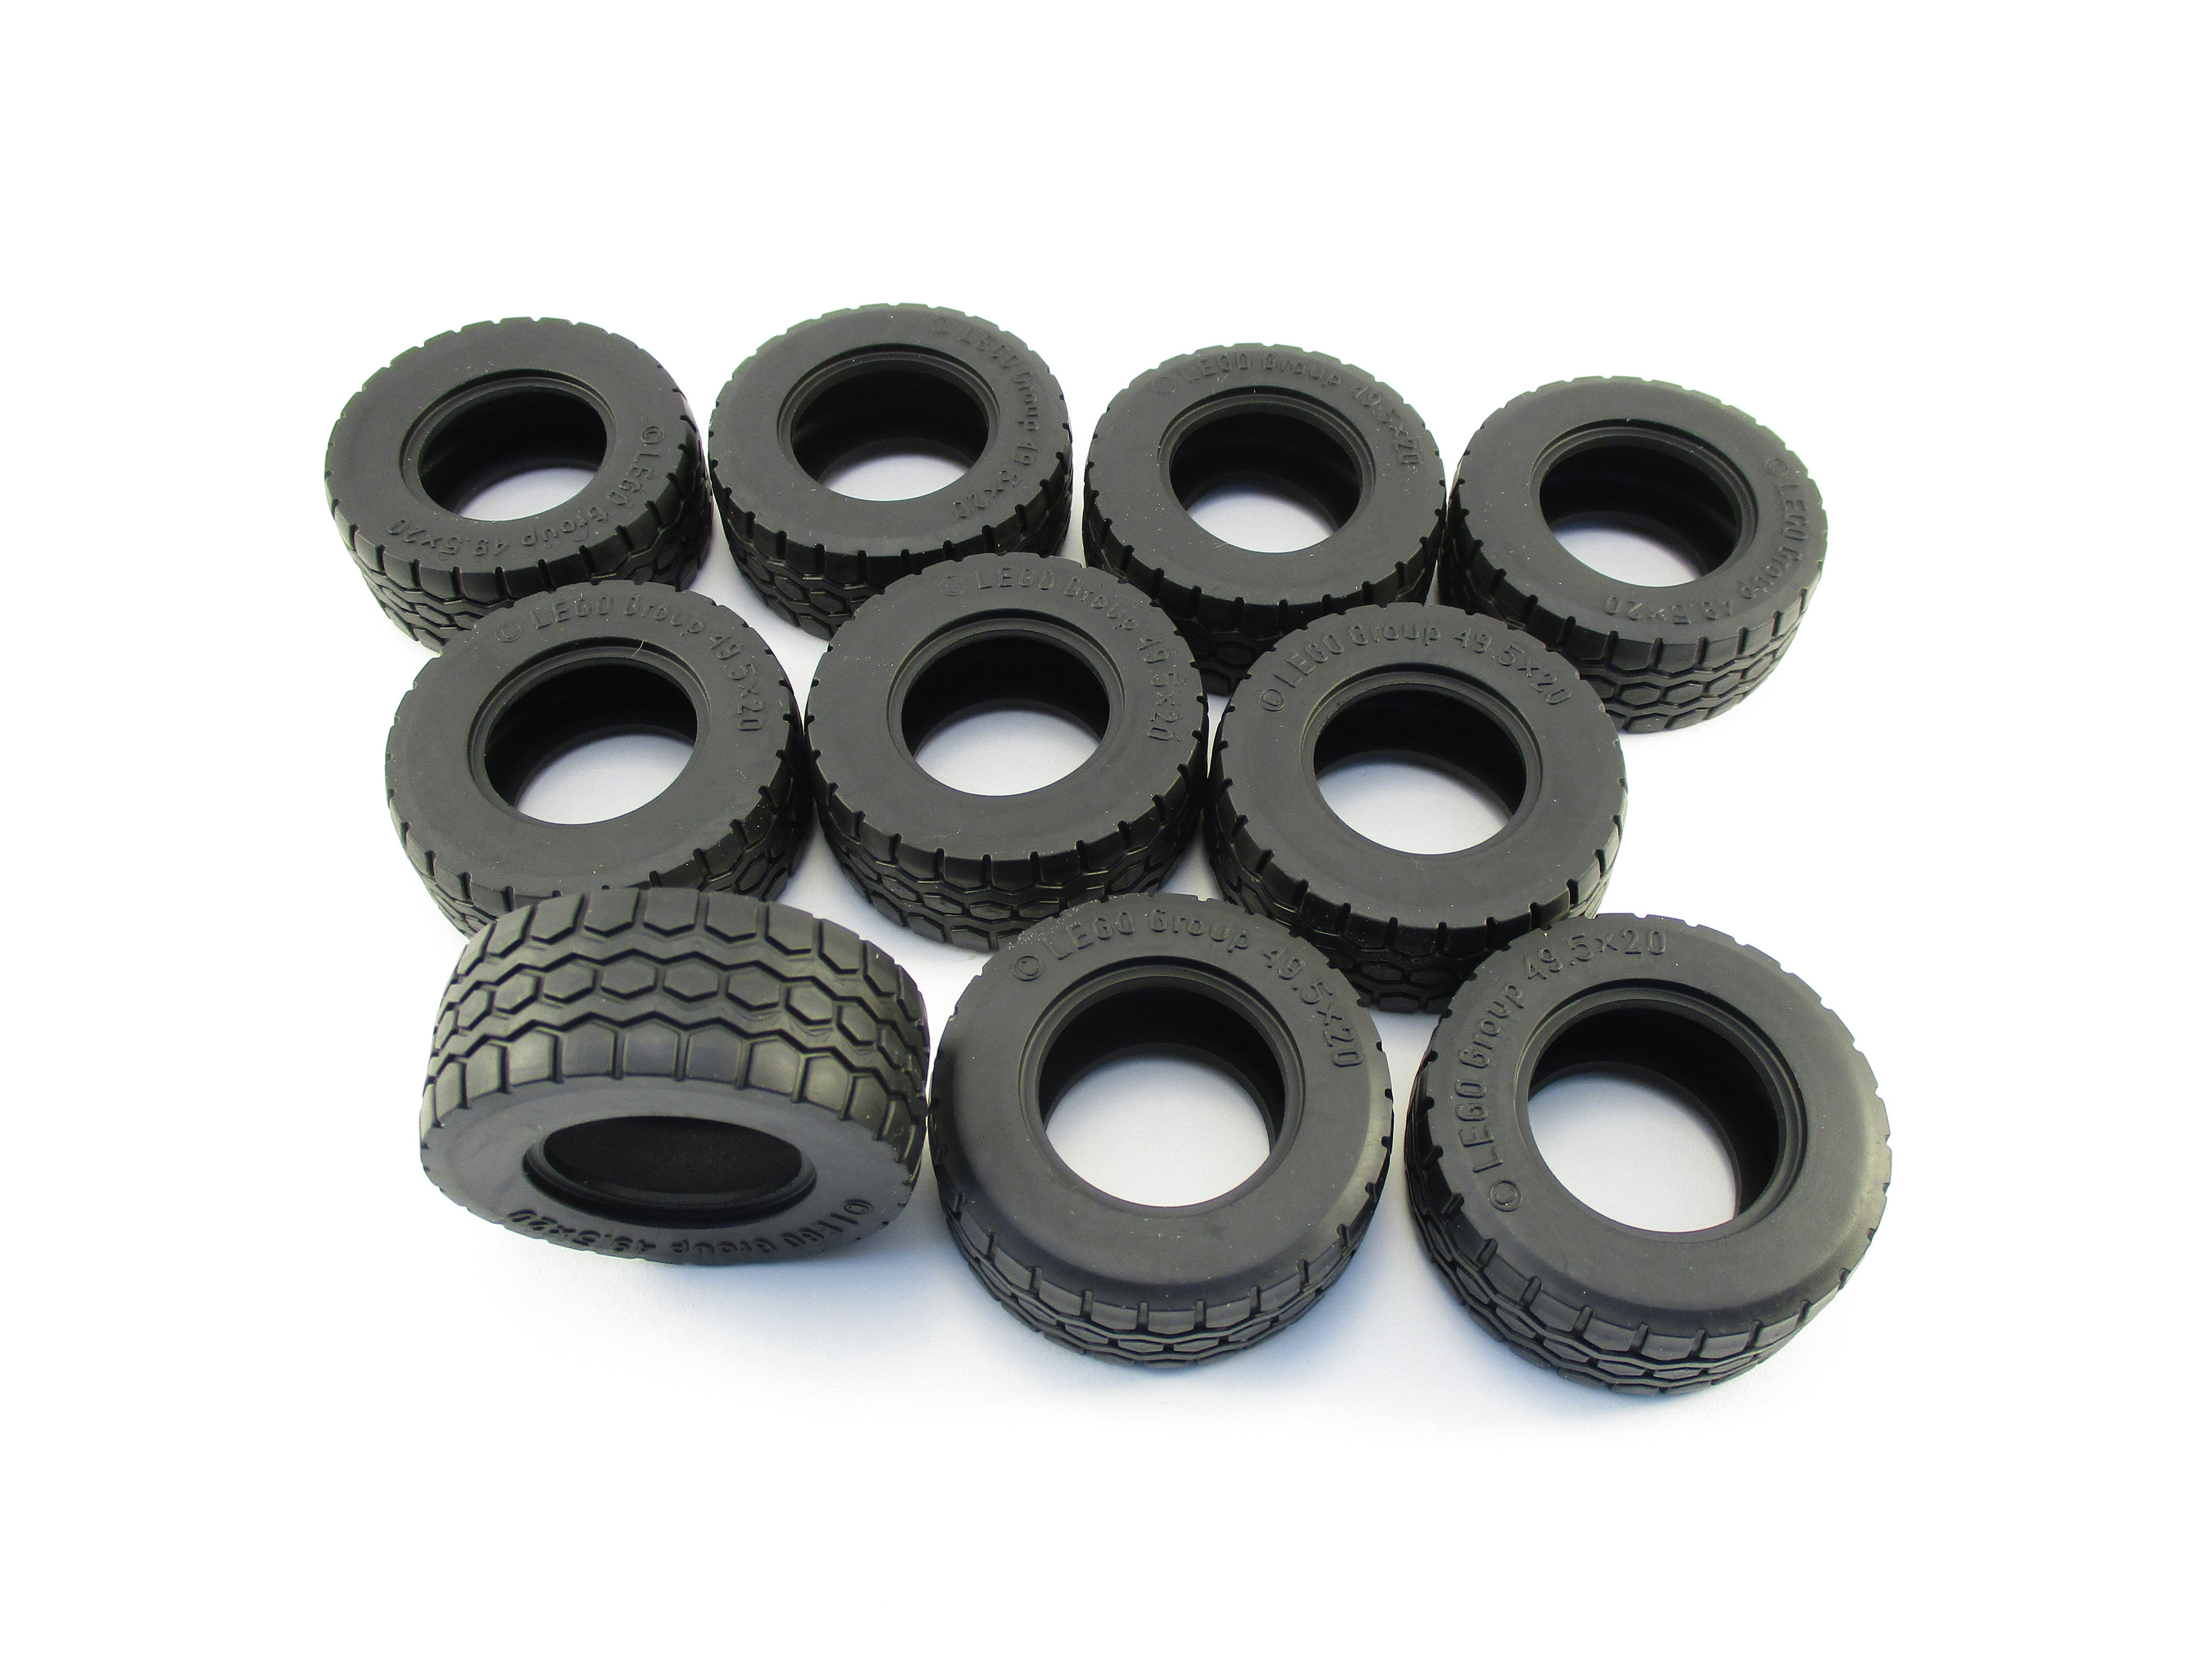 LEGO Black Tire 49.5x20 Lot of 10 Parts Pieces 15413